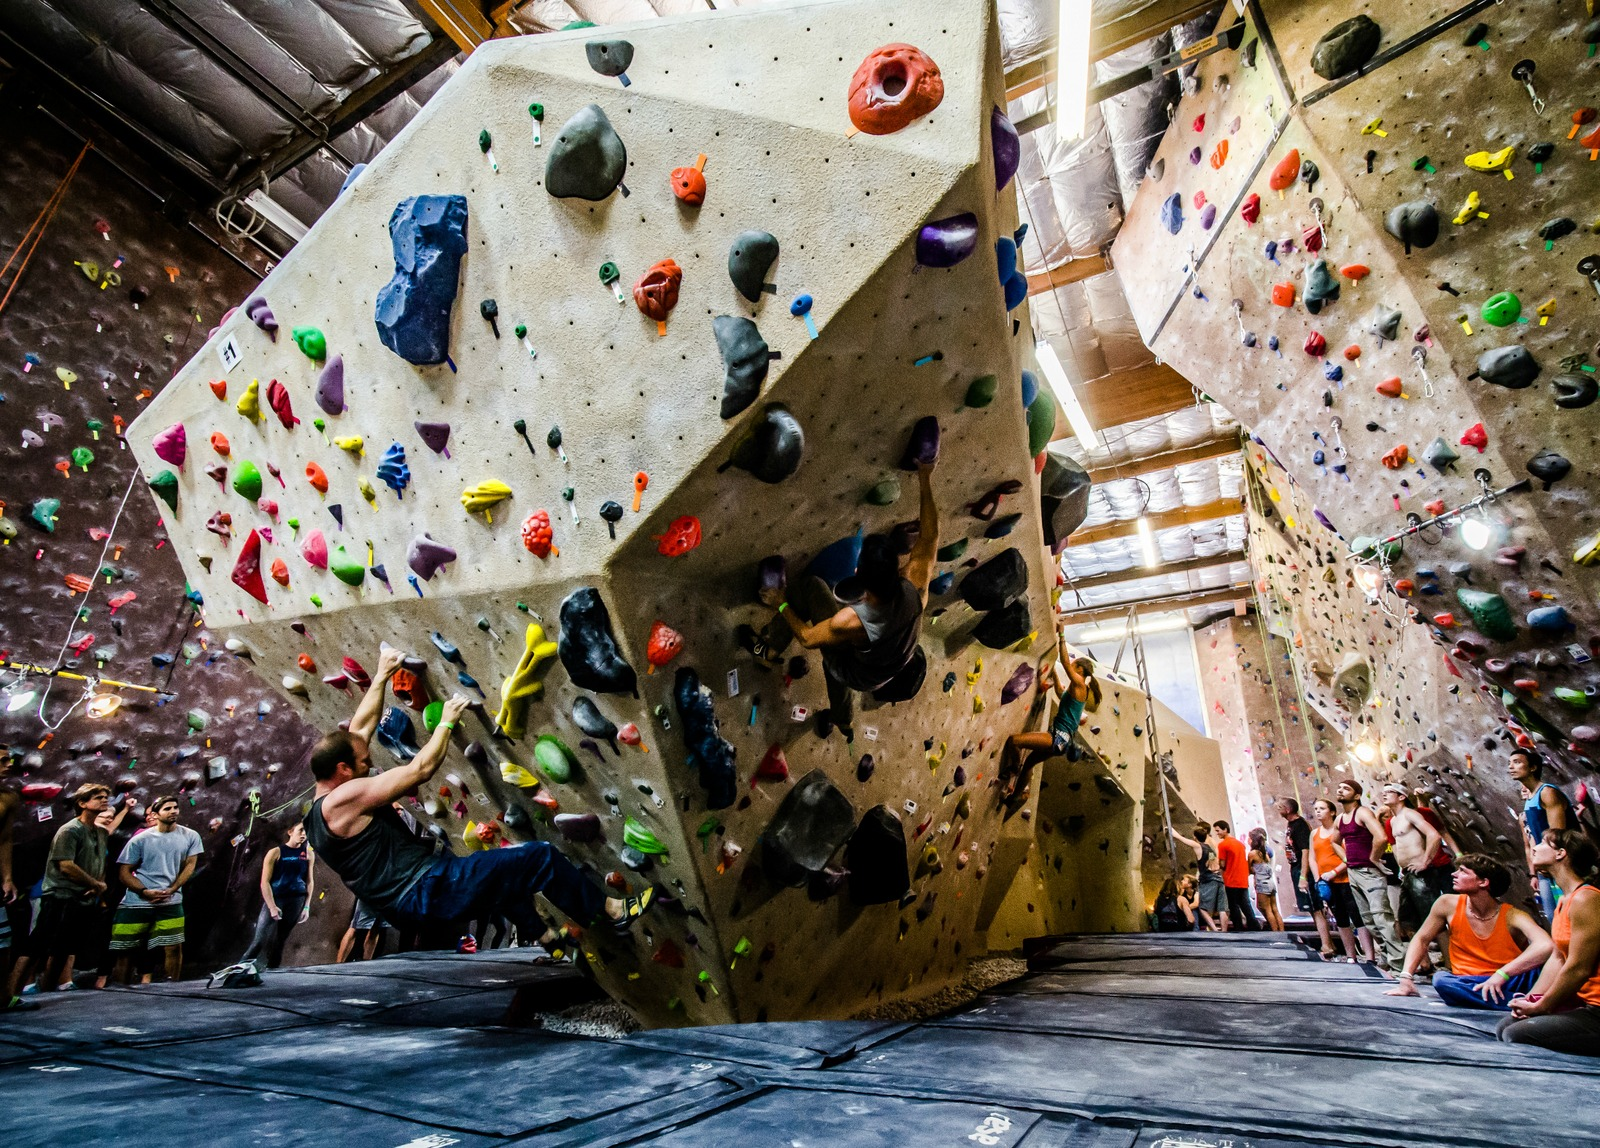 About Us - Vertical Hold Indoor Rock Climbing Gym specializes in the best Bouldering, Top Rope and Lead Climbing in Greater San Diego.